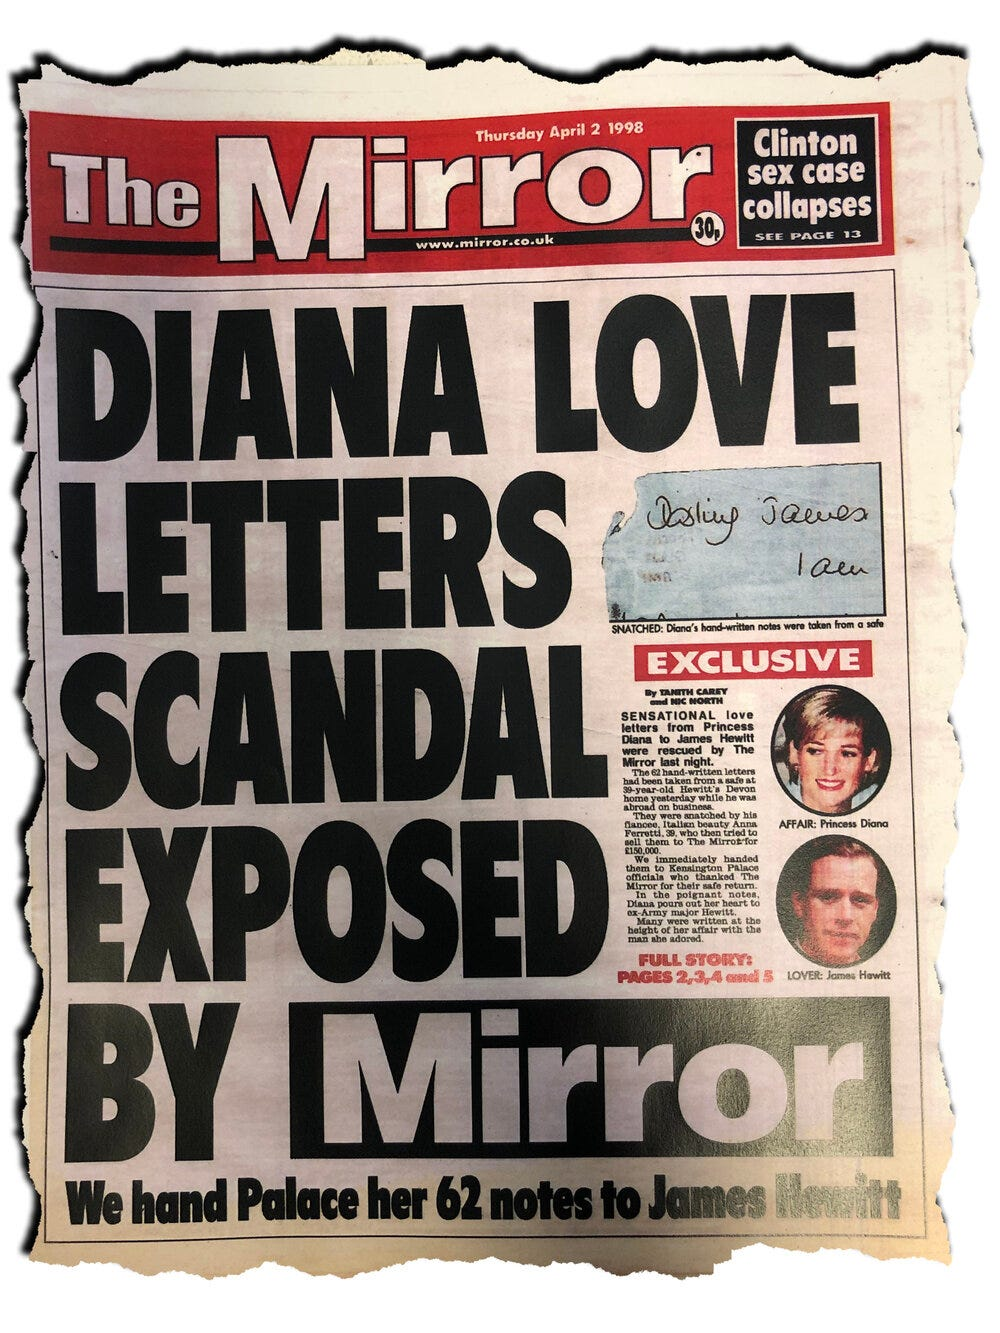 EXCLUSIVE: Piers Morgan Named in New Court Docs Over 'Theft of Princess  Diana Letters' – Byline Investigates